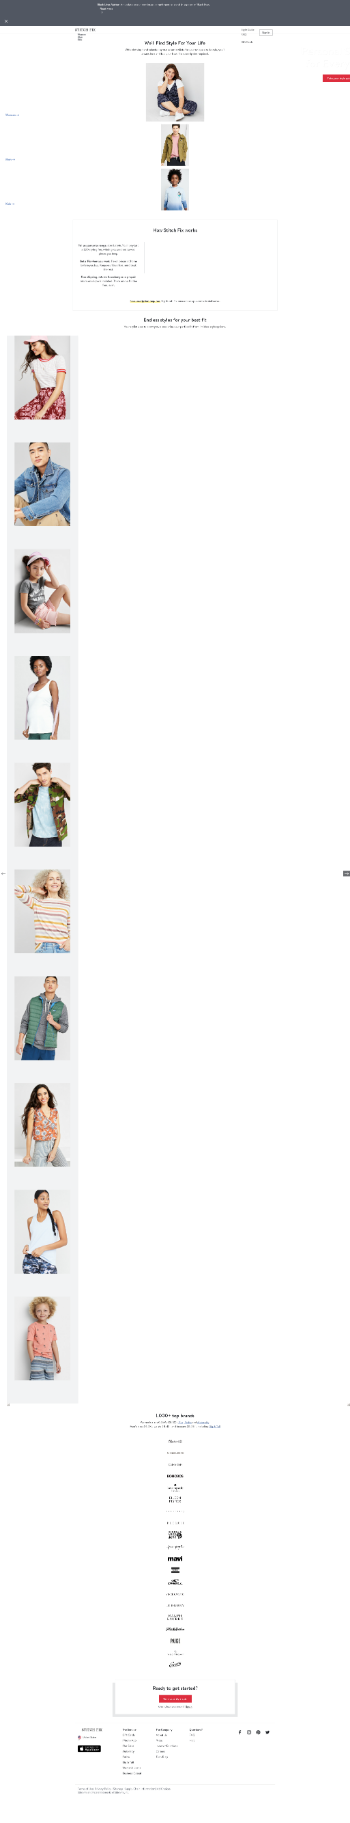 Stitch Fix, Inc. Website Screenshot